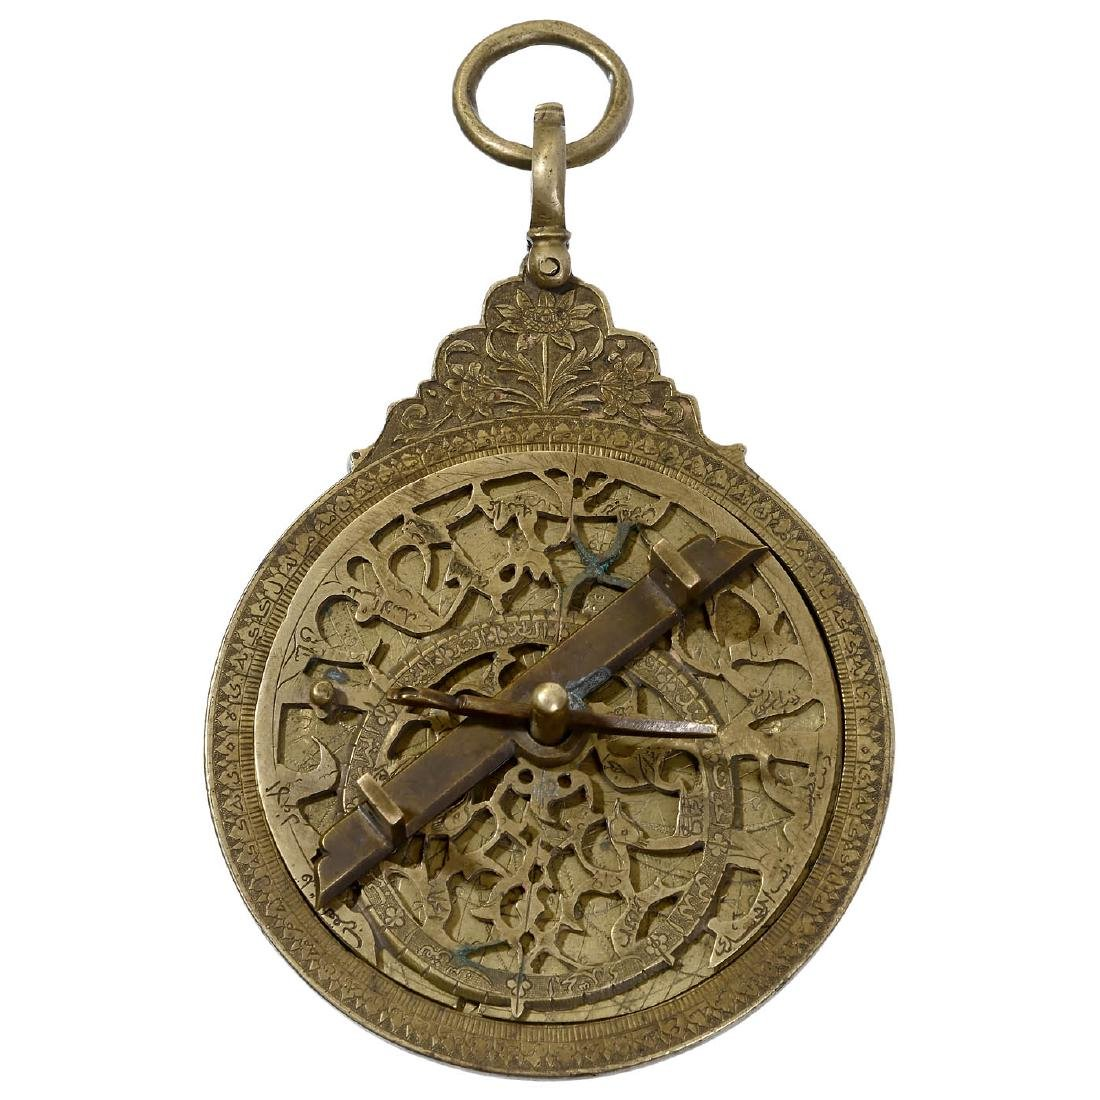 Rare Islamic Astrolabe, probably late 18th/early 19th